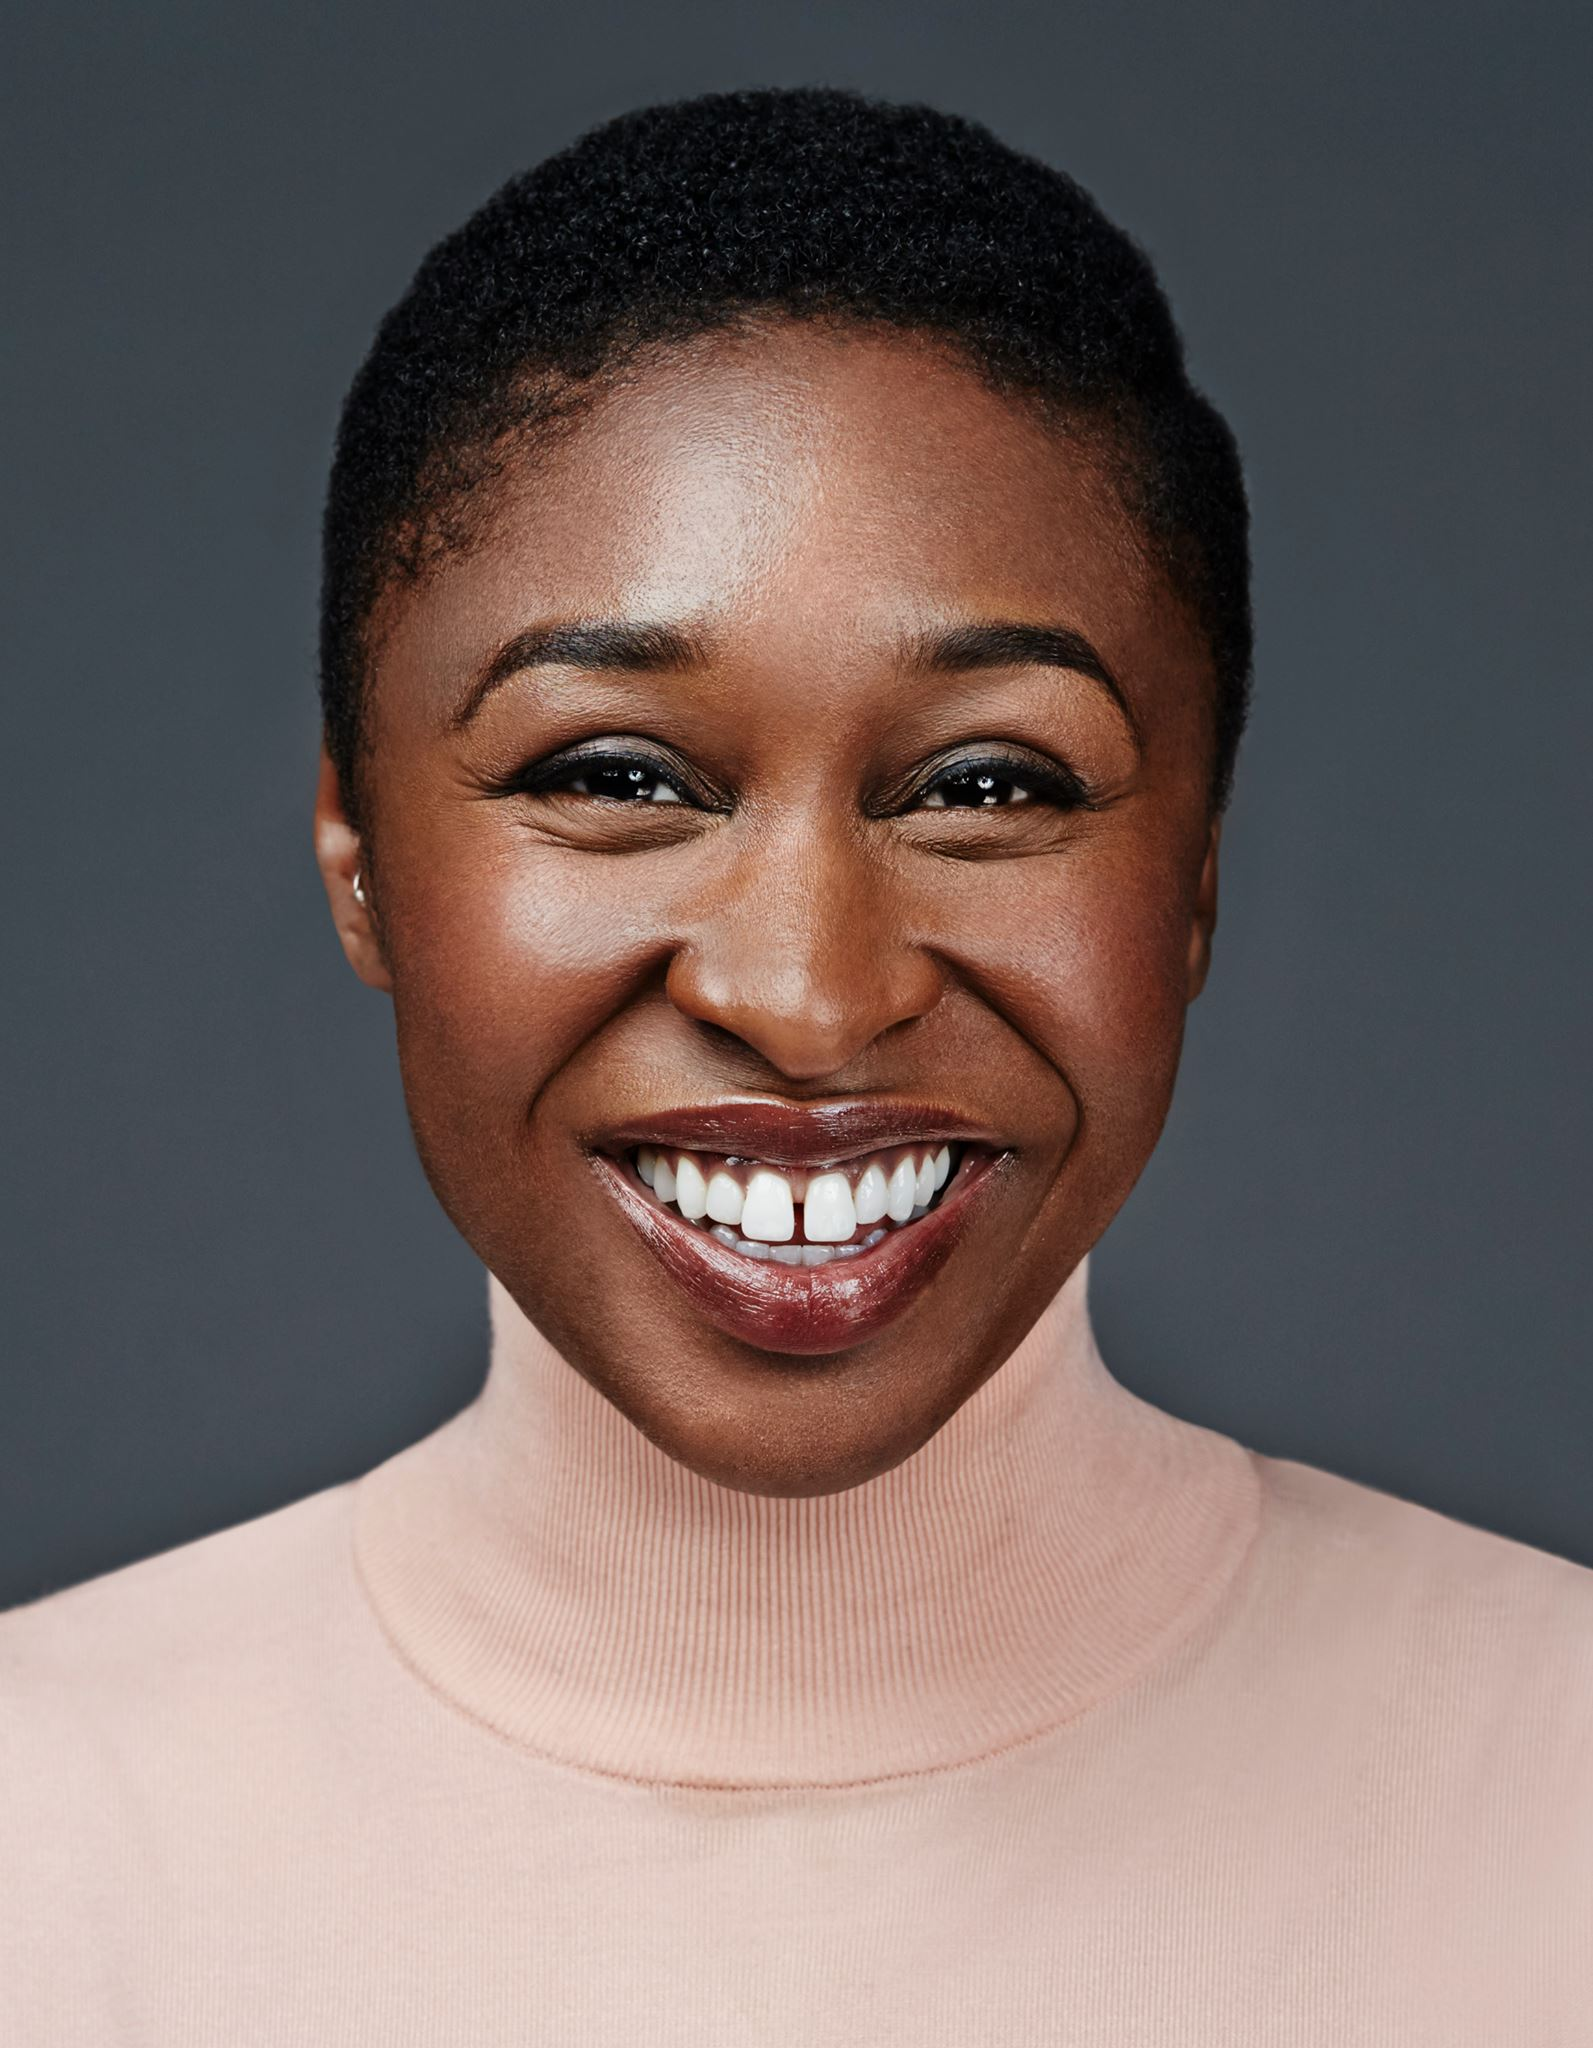 """""""An artist like Cynthia comes around a couple times in a lifetime. It's just that remarkable. And she wasn't on any of our radar. It almost makes it more delicious,"""" said said Scott Sanders, The Color Purple's lead producer said. (Photo: Cynthia Erivo/Facebook)"""